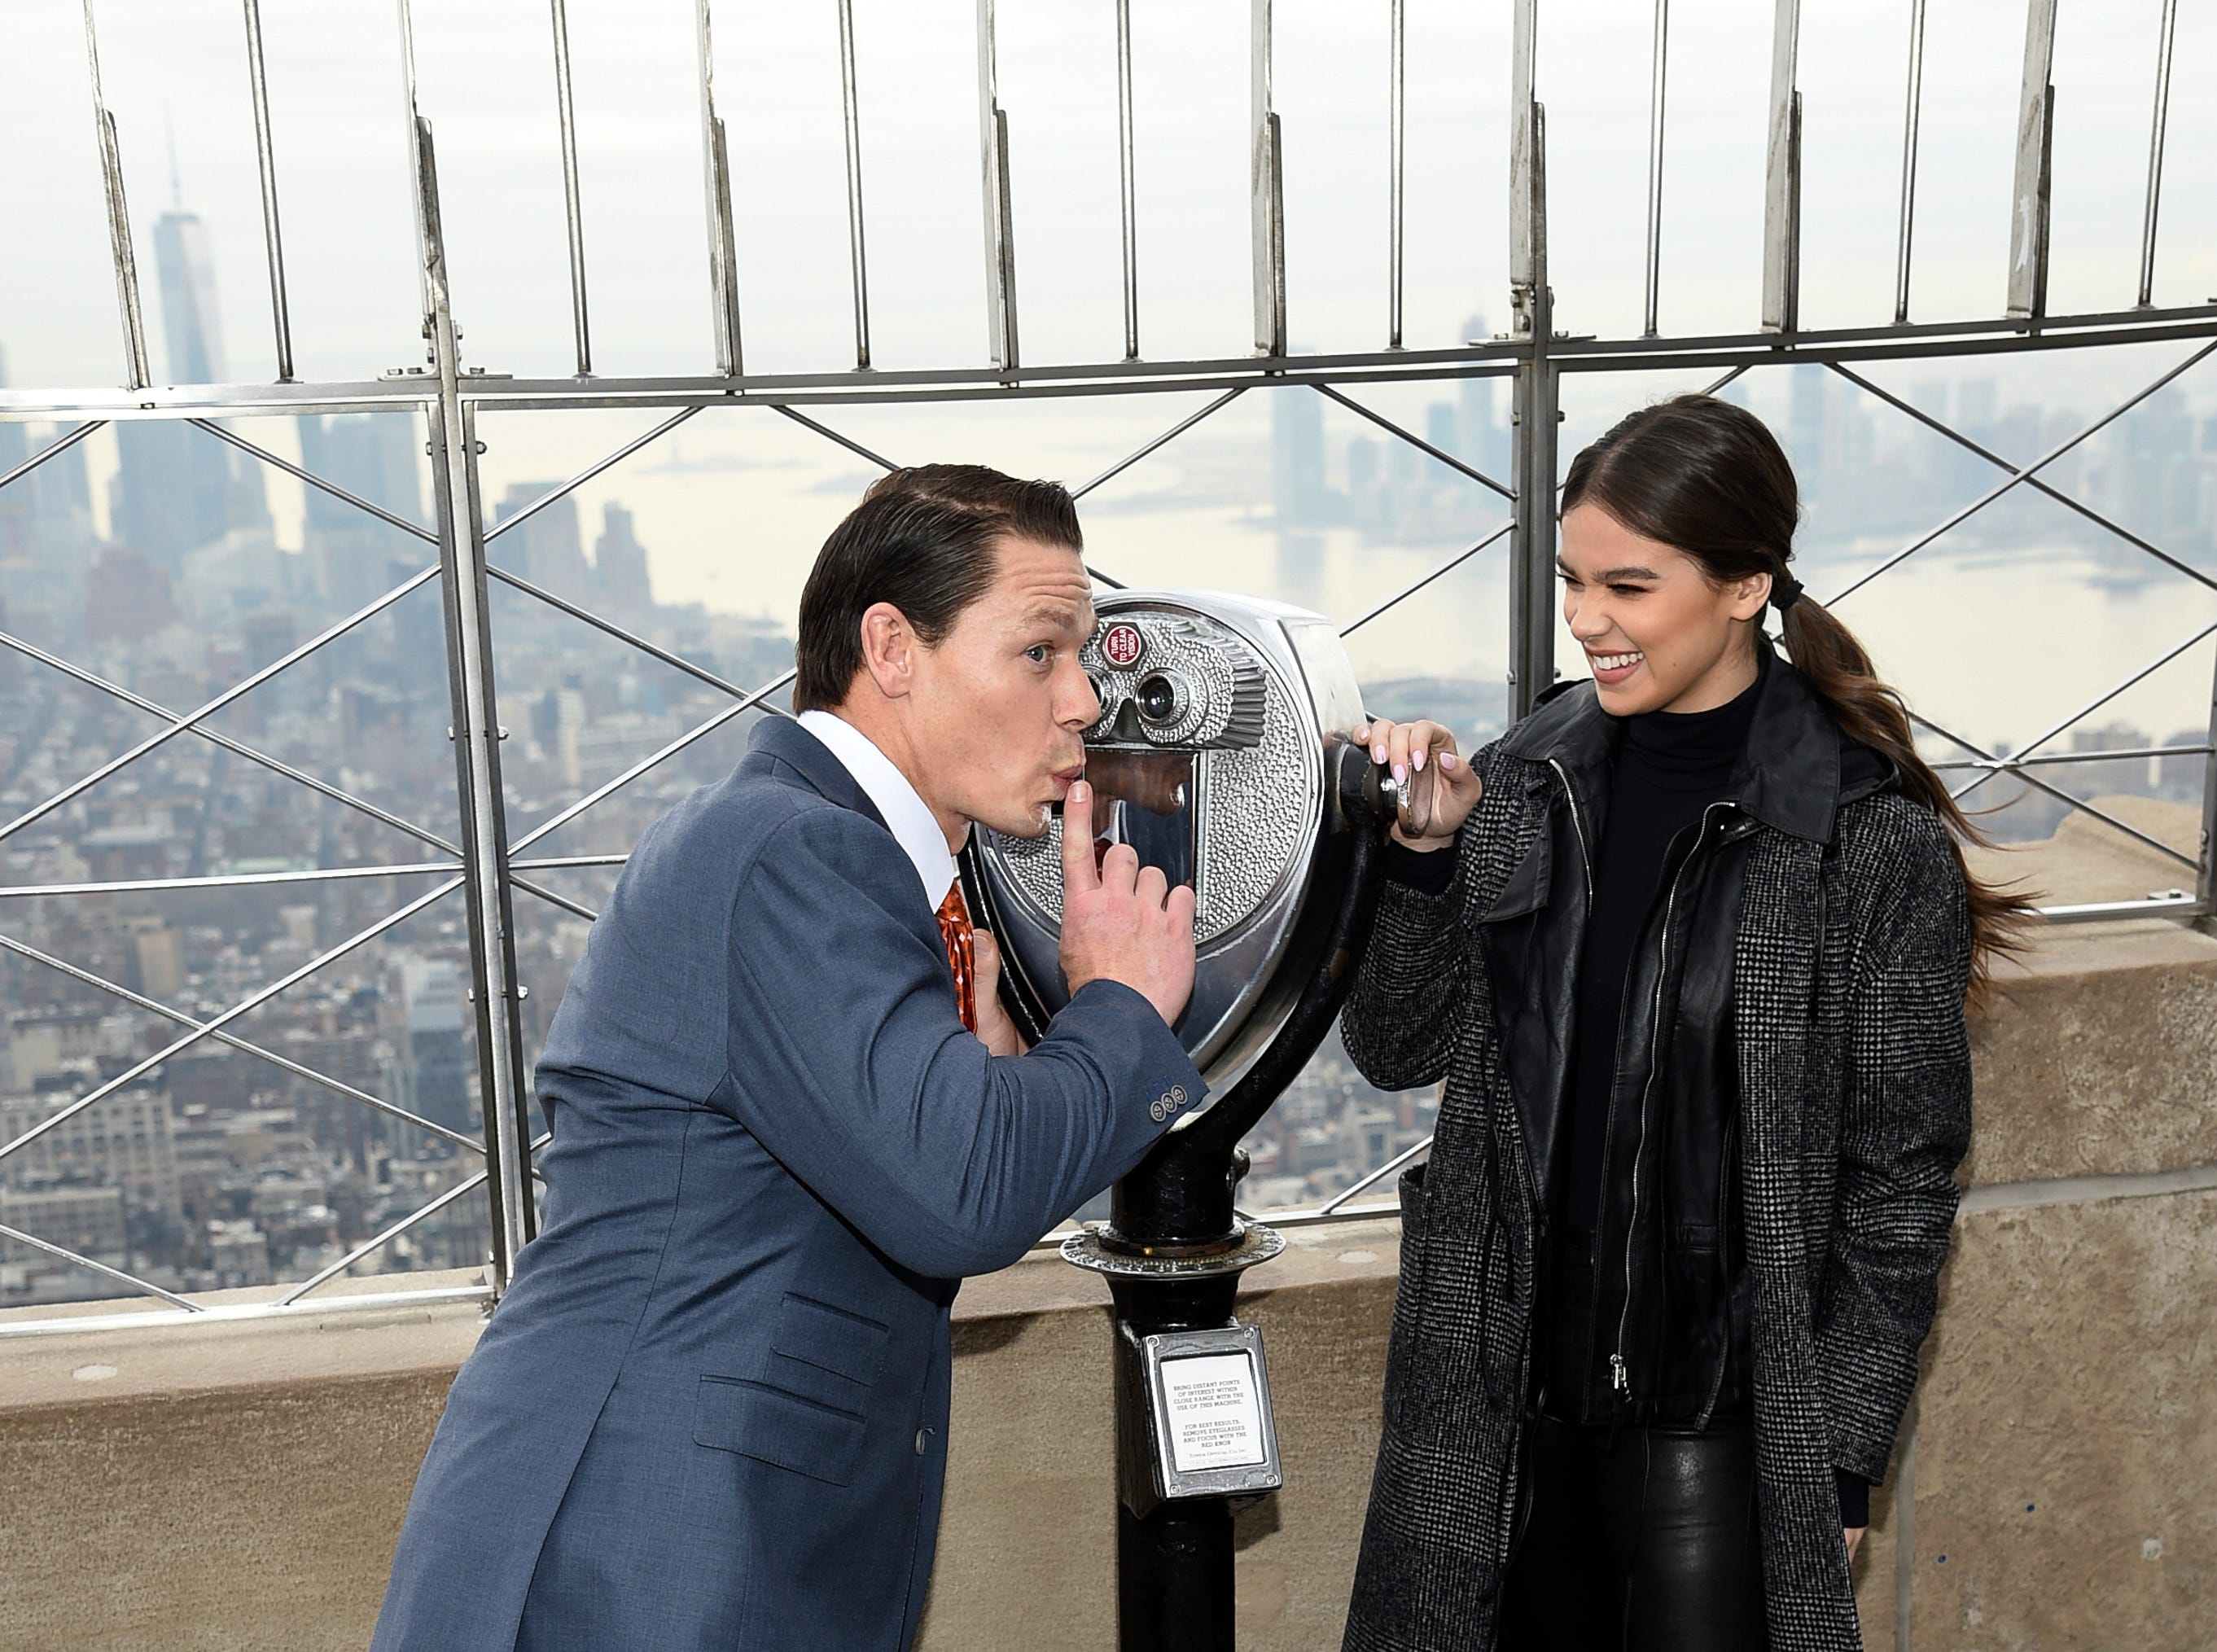 Actors John Cena, left, and Hailee Steinfeld pose together on the 86th floor observation deck at the Empire State Building in support of the Make-A-Wish Foundation on Thursday, Dec. 20, 2018, in New York. (Photo by Evan Agostini/Invision/AP) ORG XMIT: NYEA105